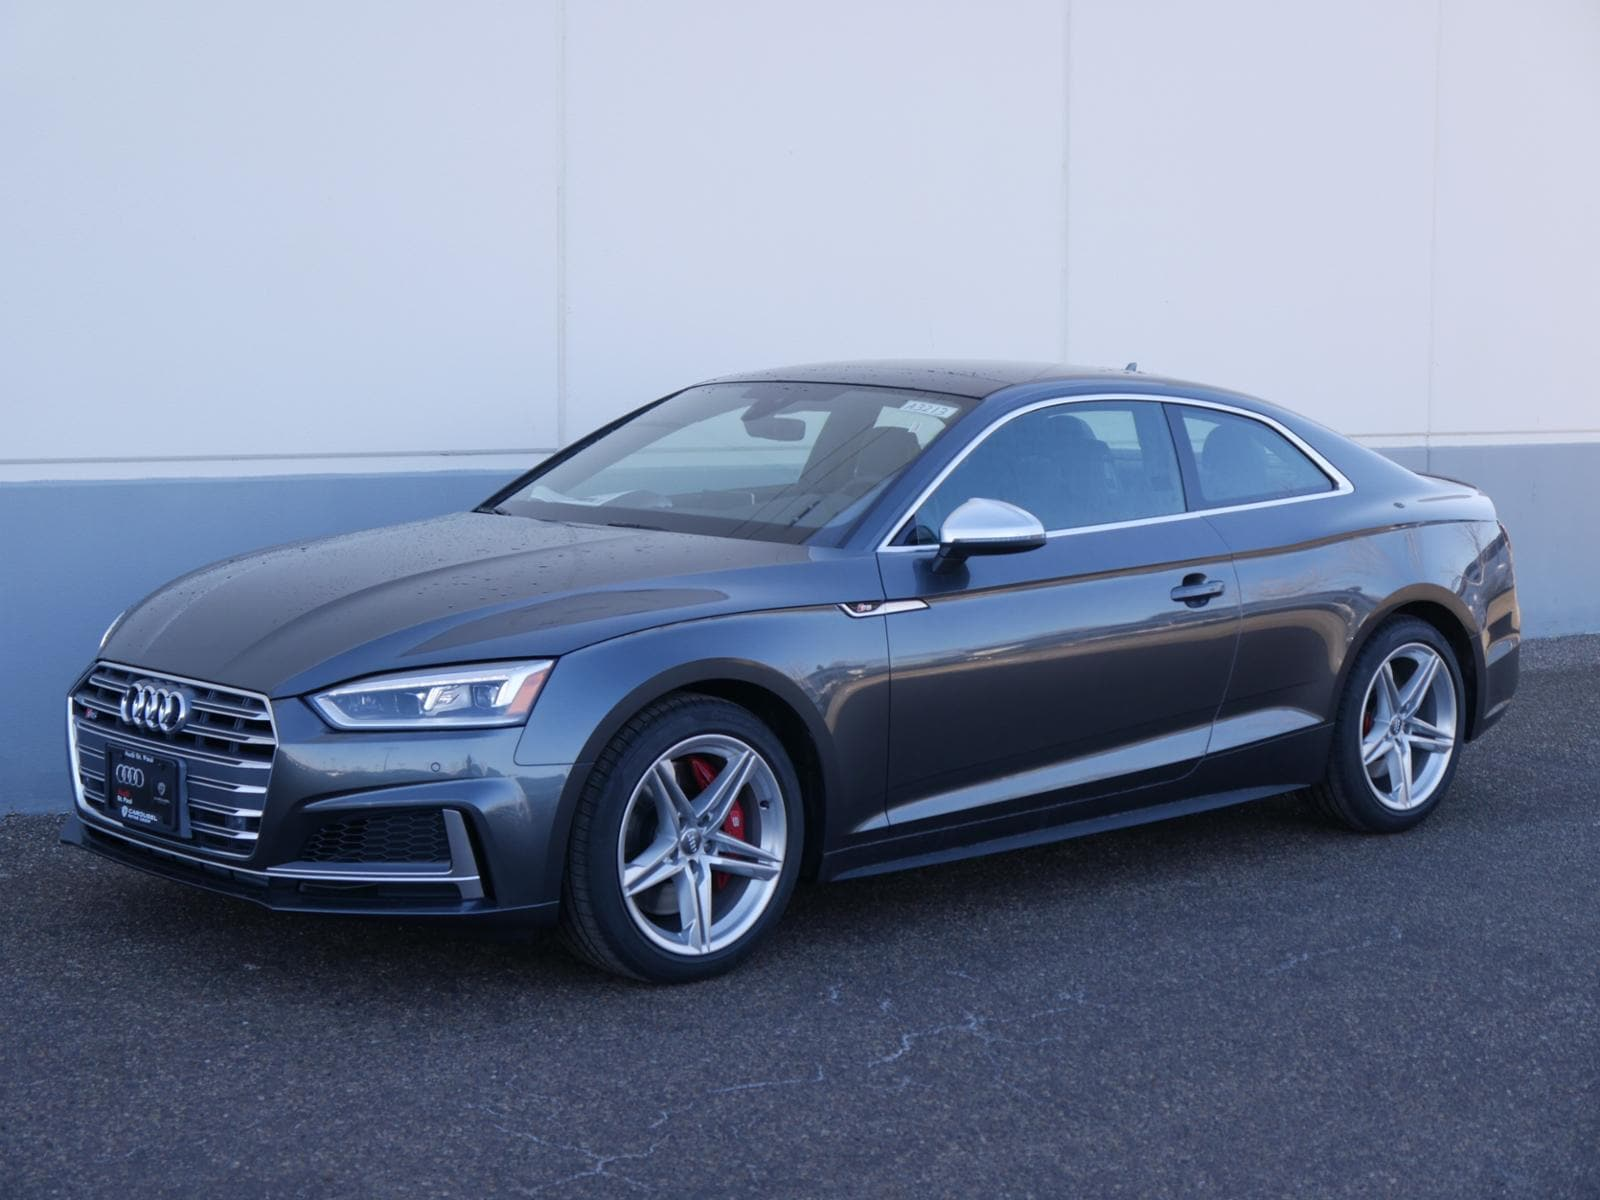 new audi s5 in maplewood mn inventory photos videos. Black Bedroom Furniture Sets. Home Design Ideas